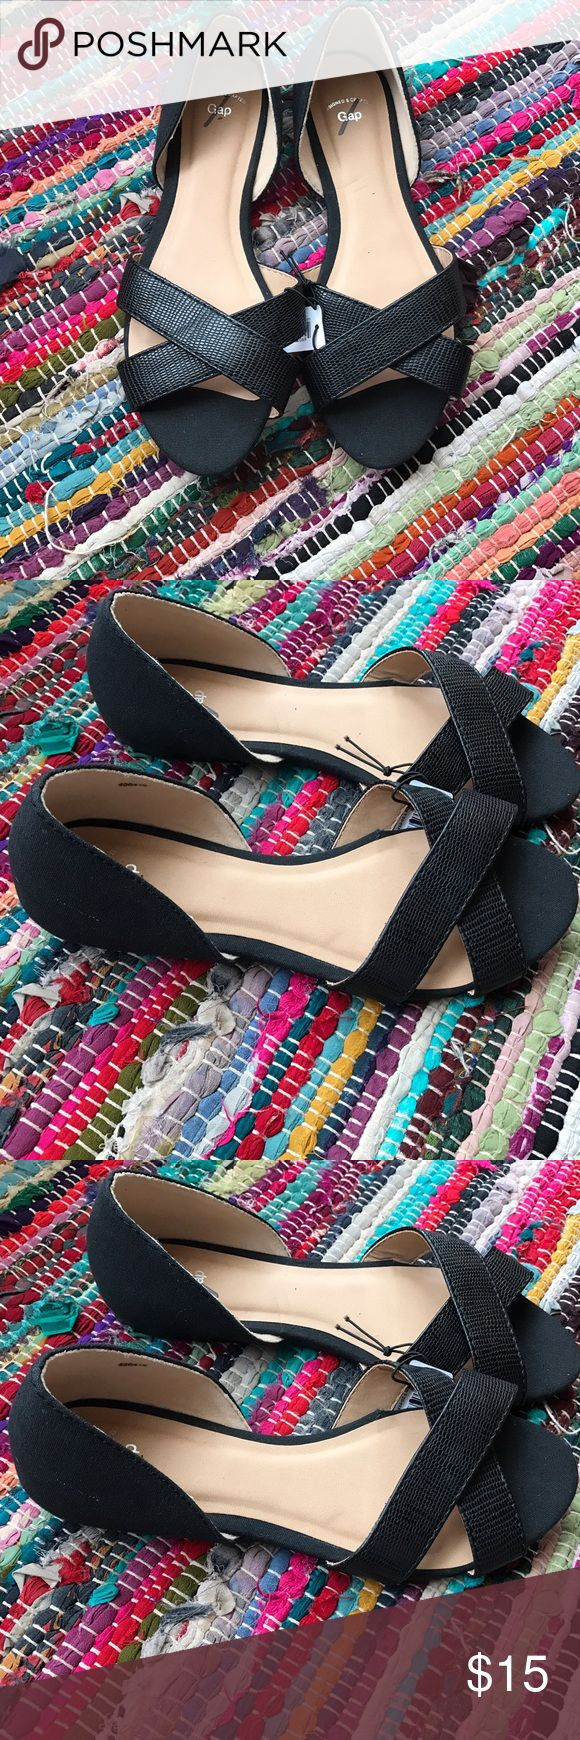 NWT GAP Black Open-Toe Flats, Size 6 These new with tags GAP flats are adorable and the perfect addition to any outfit! They are a size 6 and fit true to size. Feel free to comment and/or make an offer!🎀 GAP Shoes Flats & Loafers